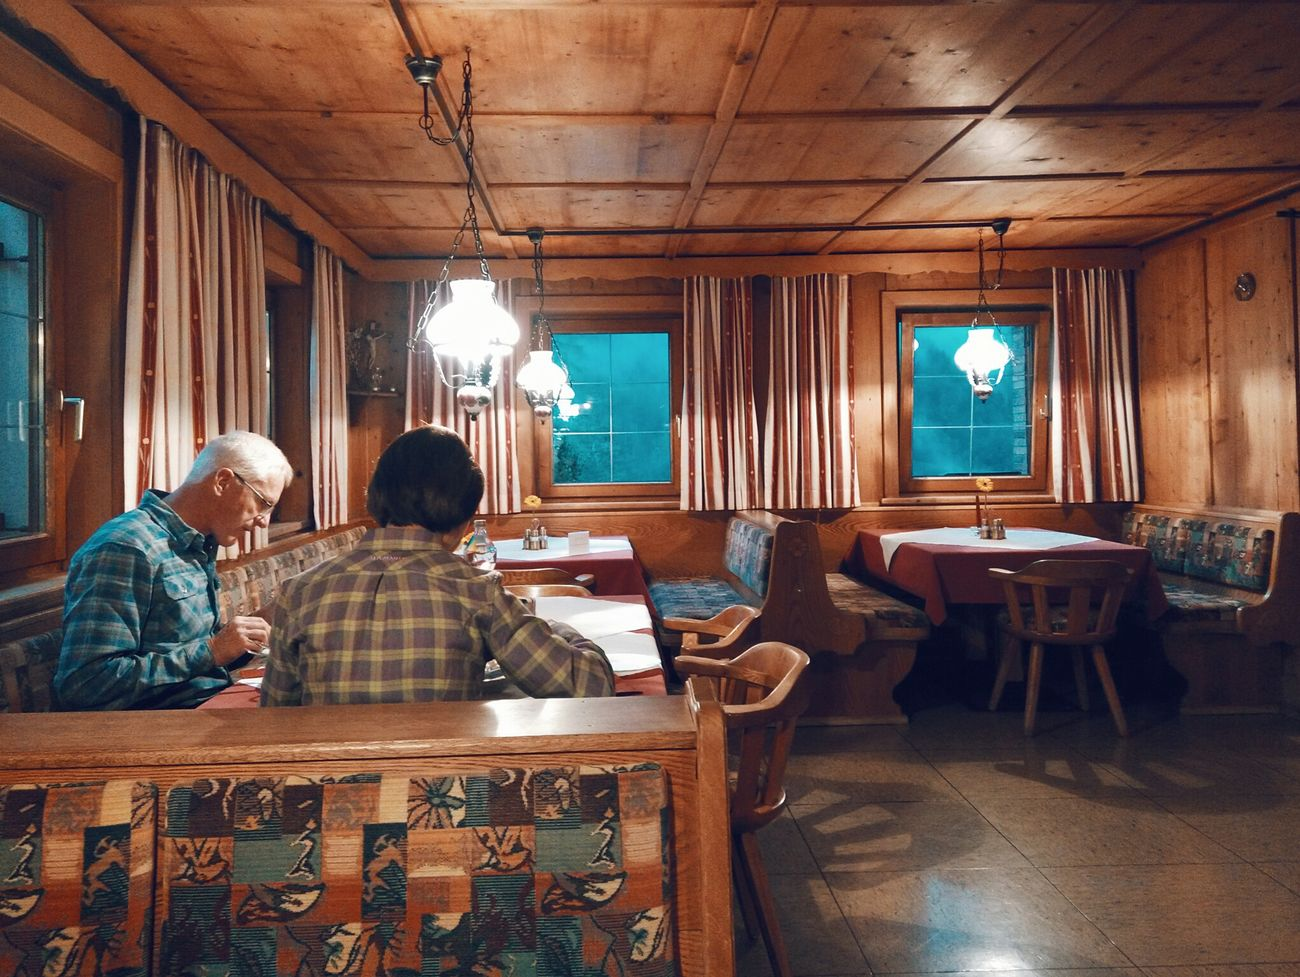 Indoors  Chair Men Rear View Table Couple Woman Restaurant